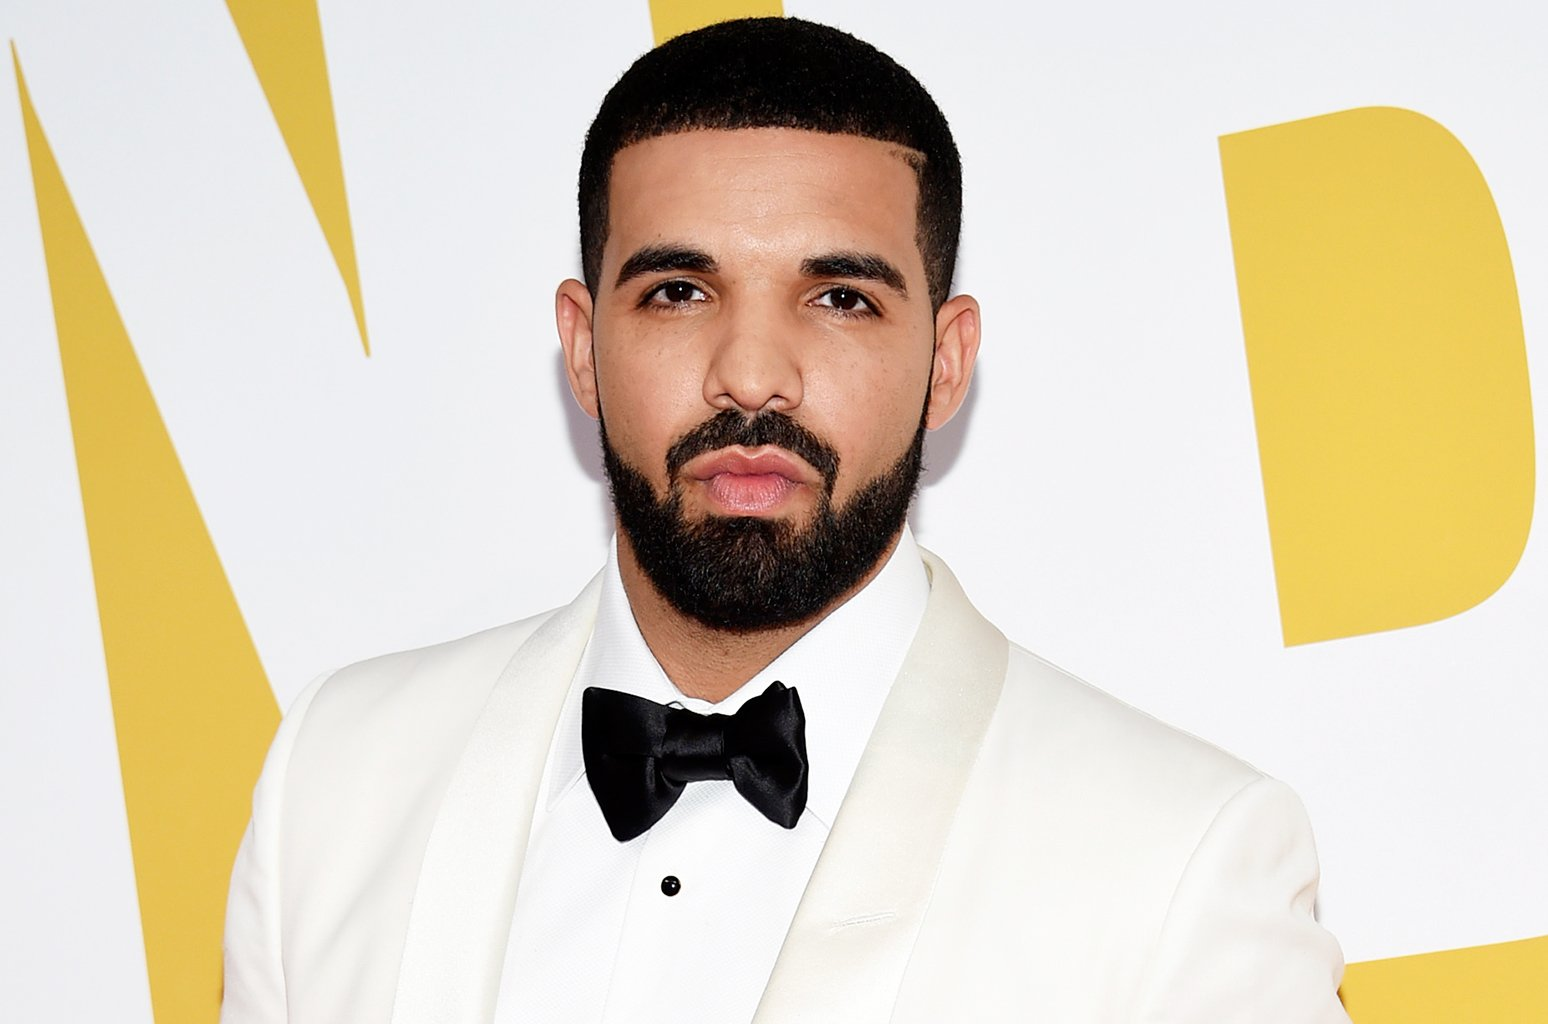 Drake is back at No. 1 on the Artist 100 for the 27th week https://t.co/96eVQqeETl https://t.co/Js2qIH6iIH